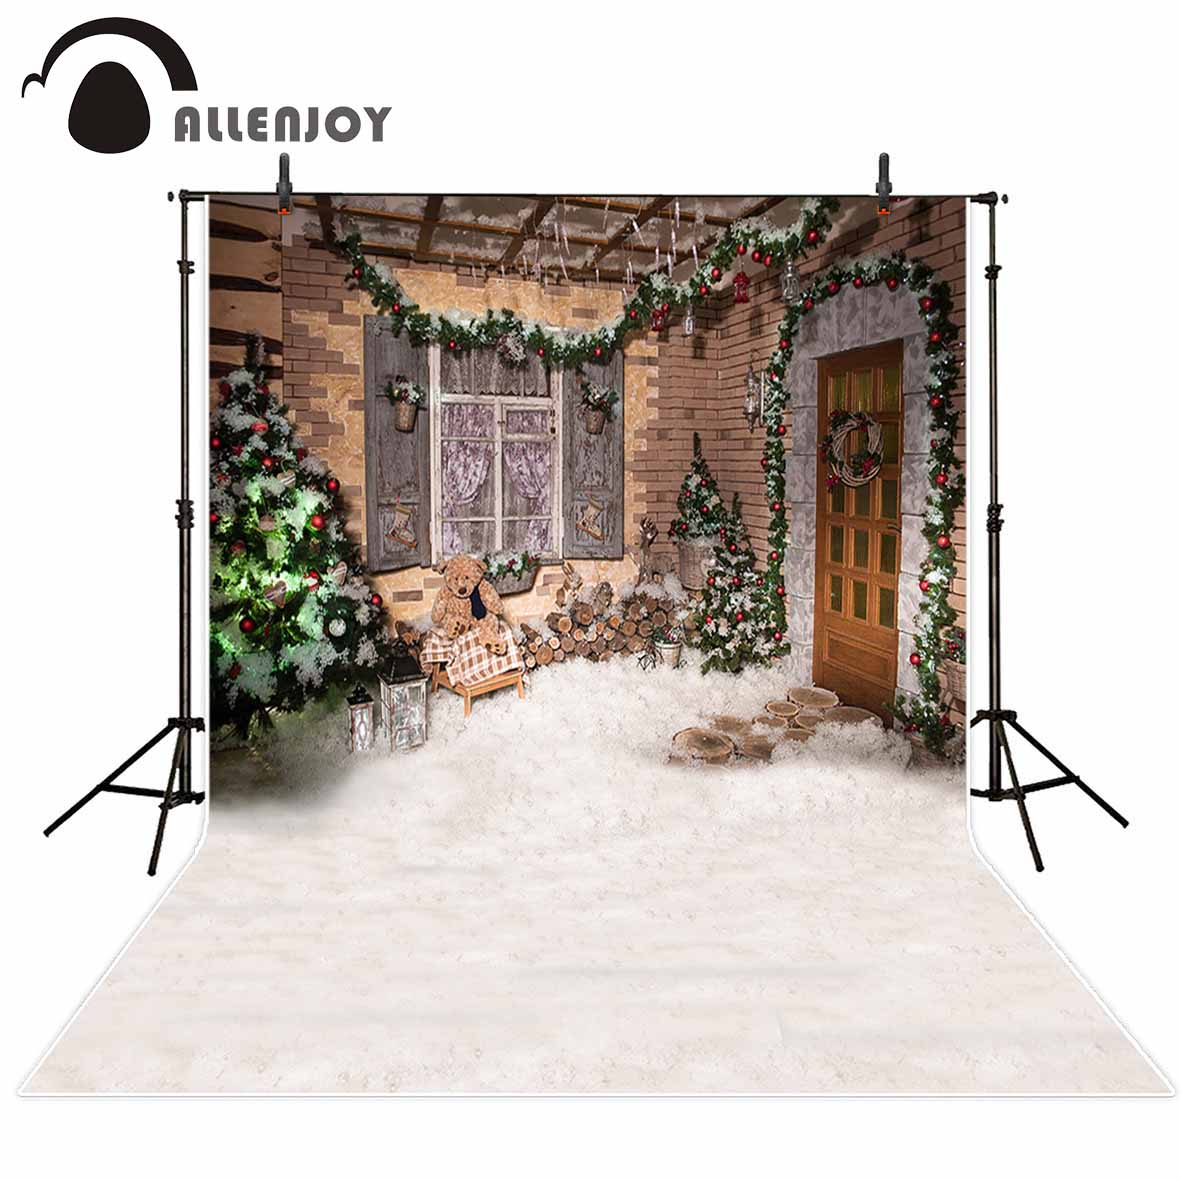 Allenjoy photography backdrop Snow winter house Christmas tree party children new background photocall customize photo printed allenjoy backgrounds for photo studio white board children light illusory children new background photocall customize backdrop